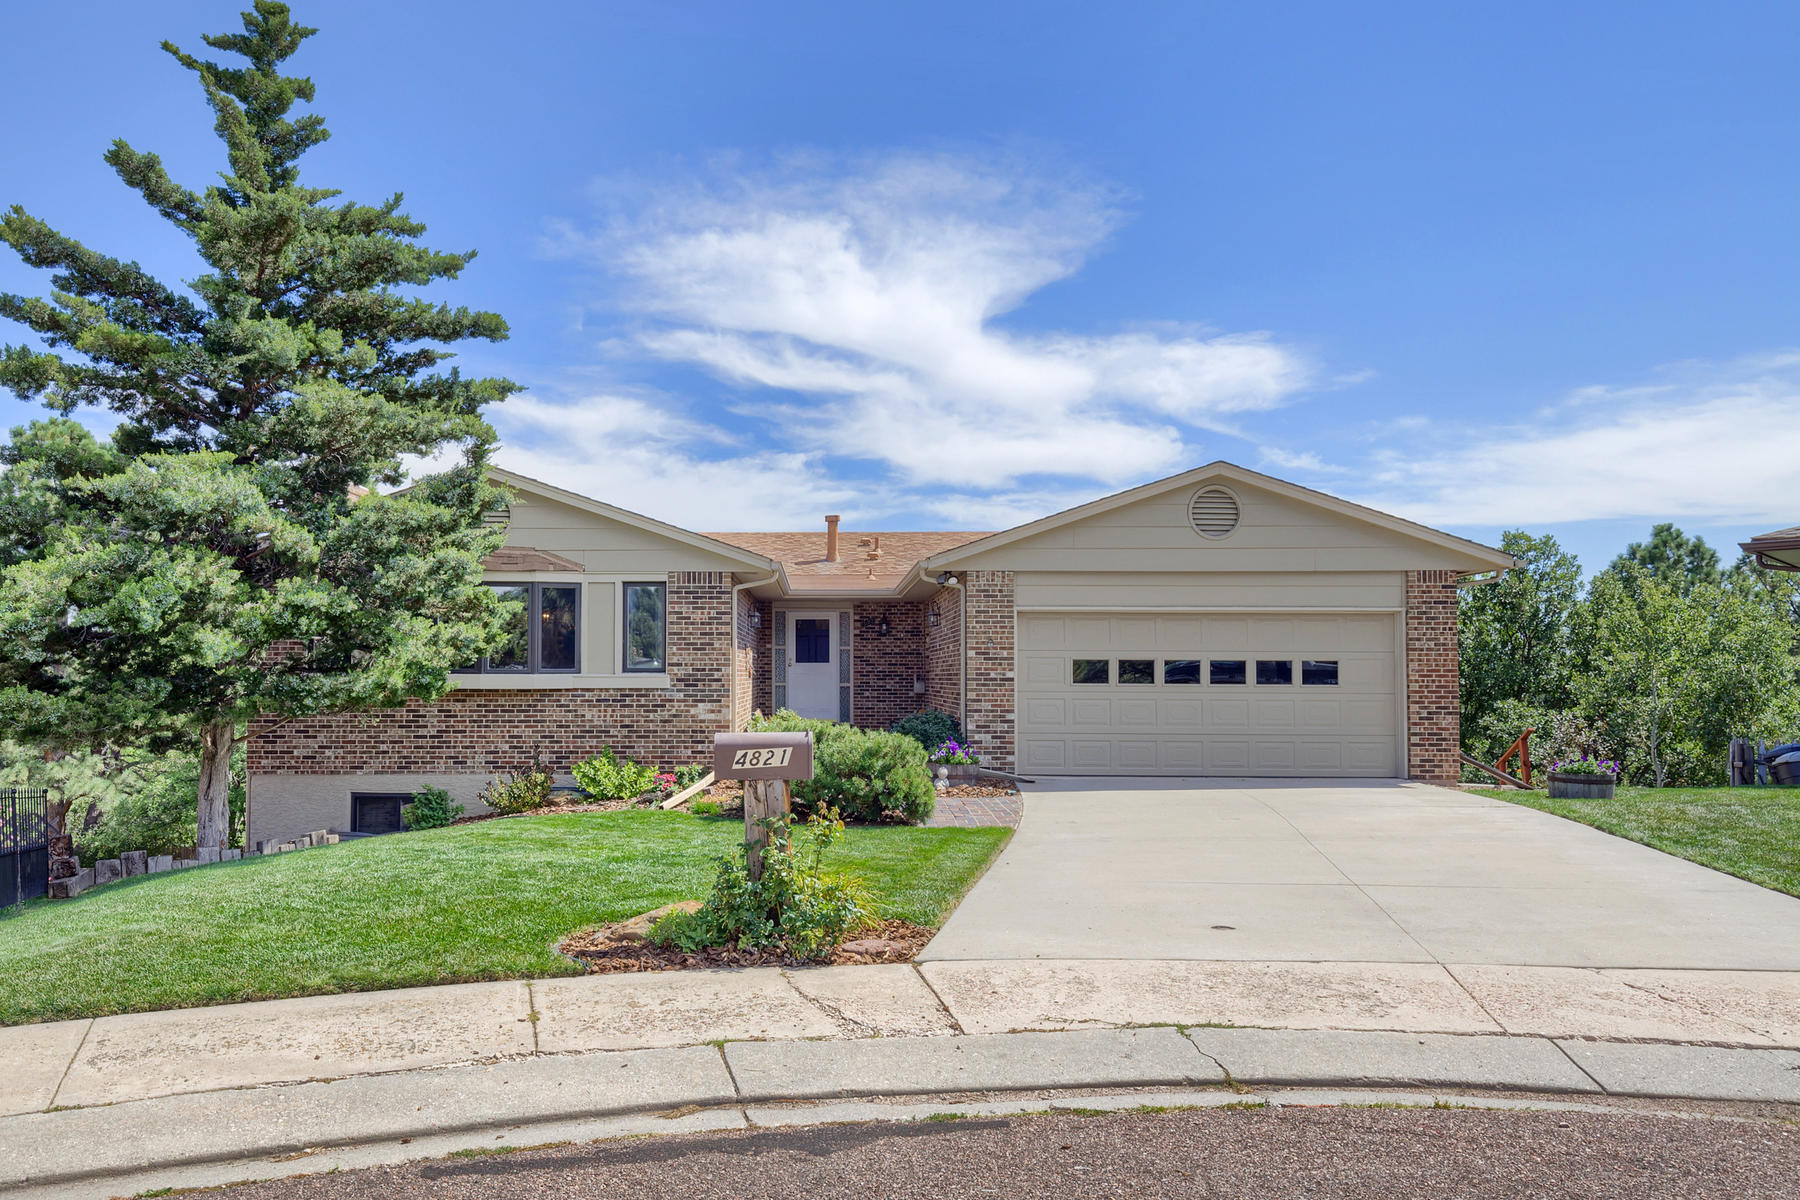 Property for Active at Unique & lovingly maintained home on tucked away cul-de-sac! 4821 Garden Pl Colorado Springs, Colorado 80918 United States